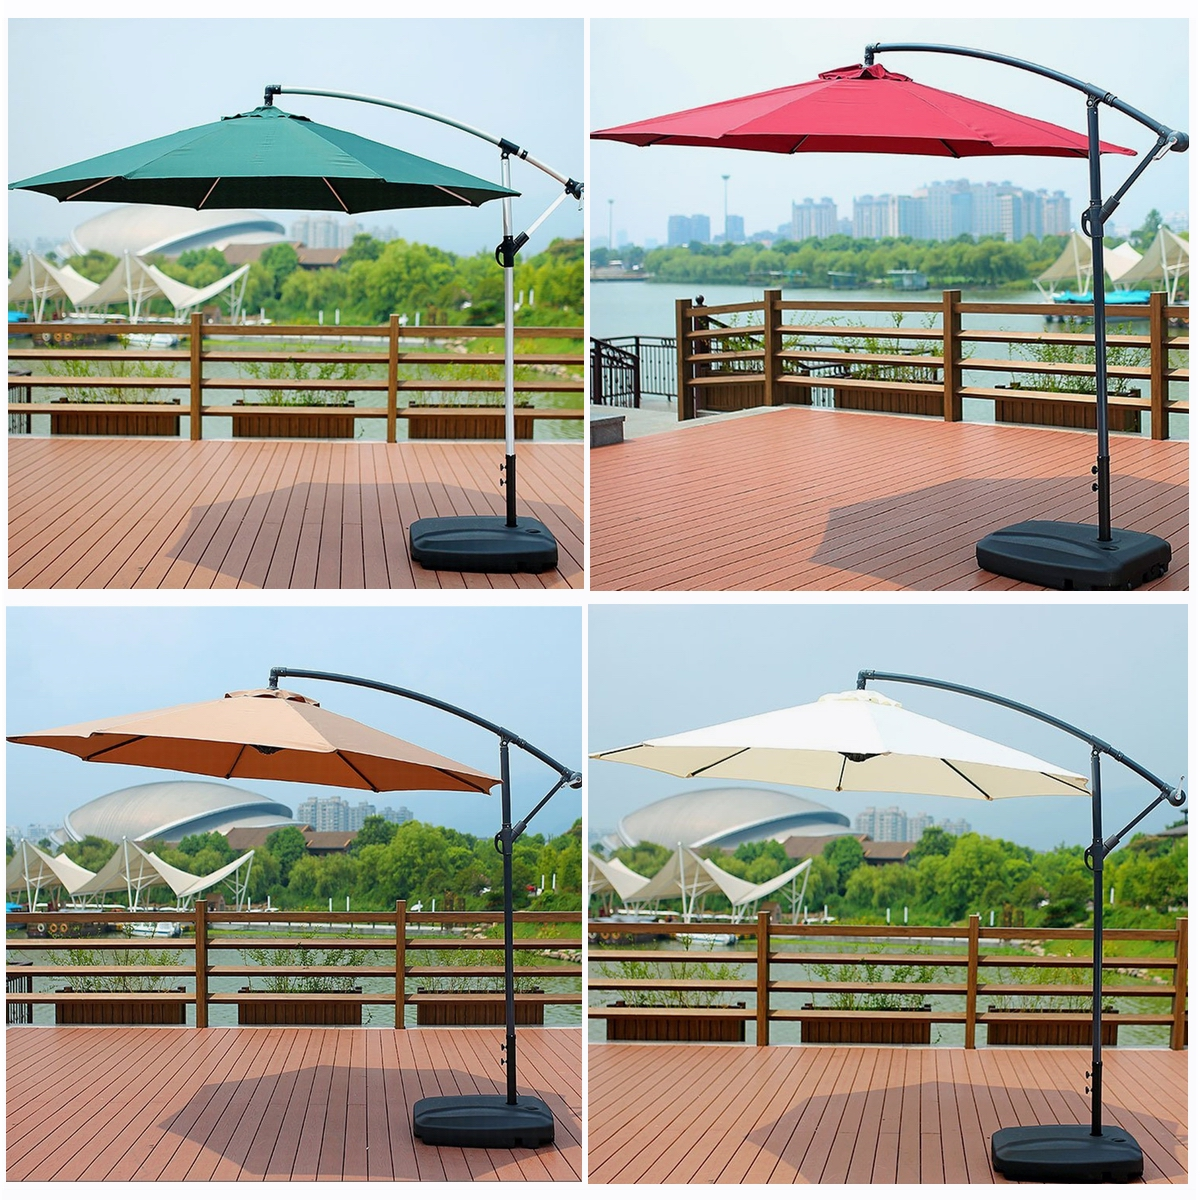 118inch waterproof sunshade beach umbrella fabric cloth canopy parasol tent cover patio garden outdoor not include stand holder